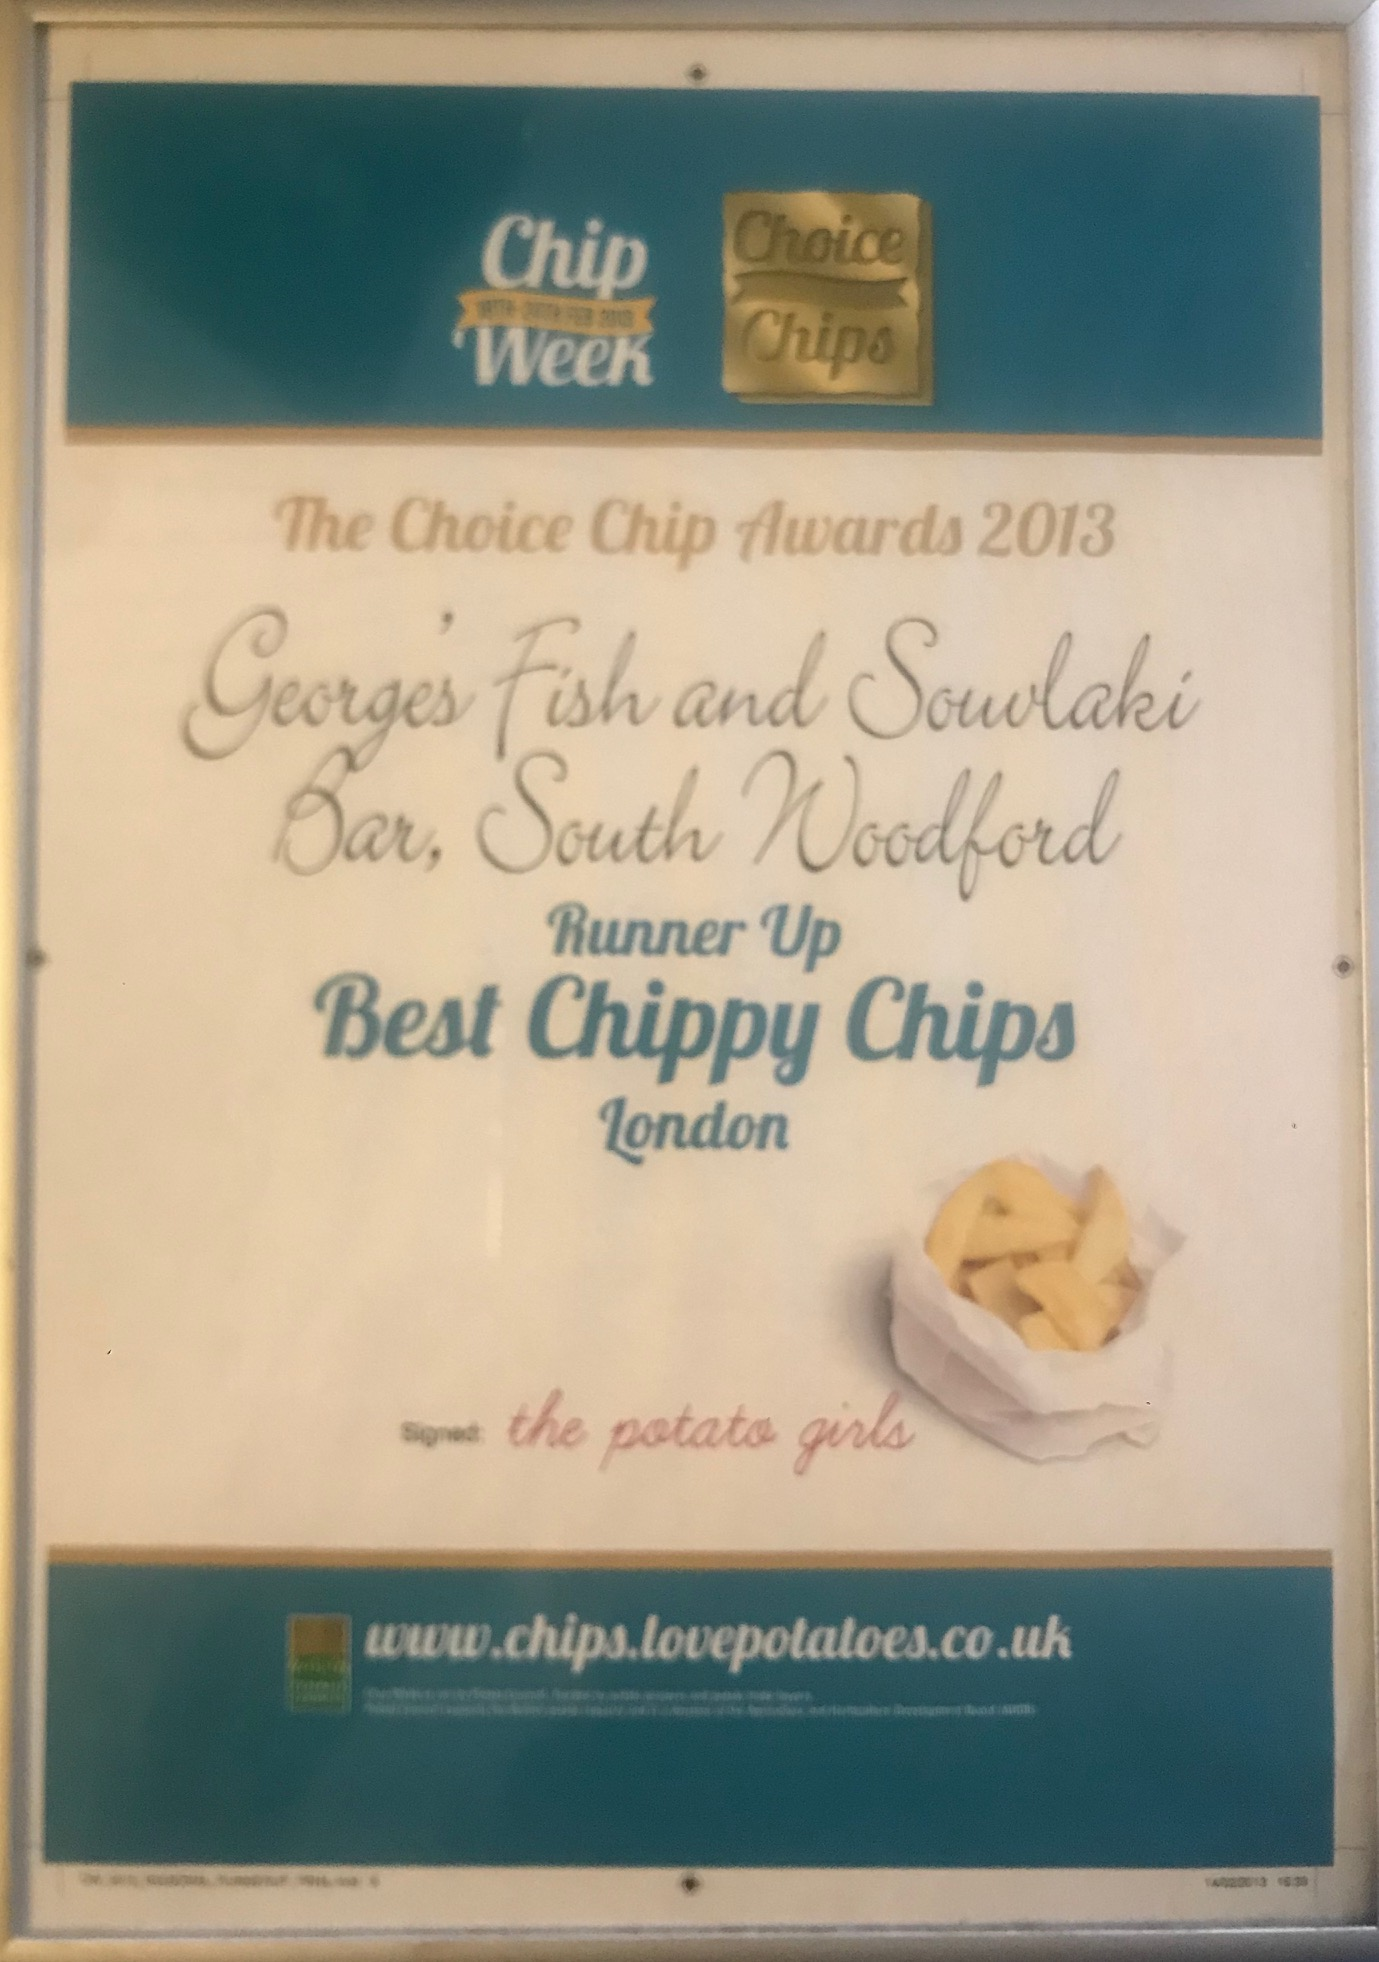 georges-fishbar-award-choice-chip-2013